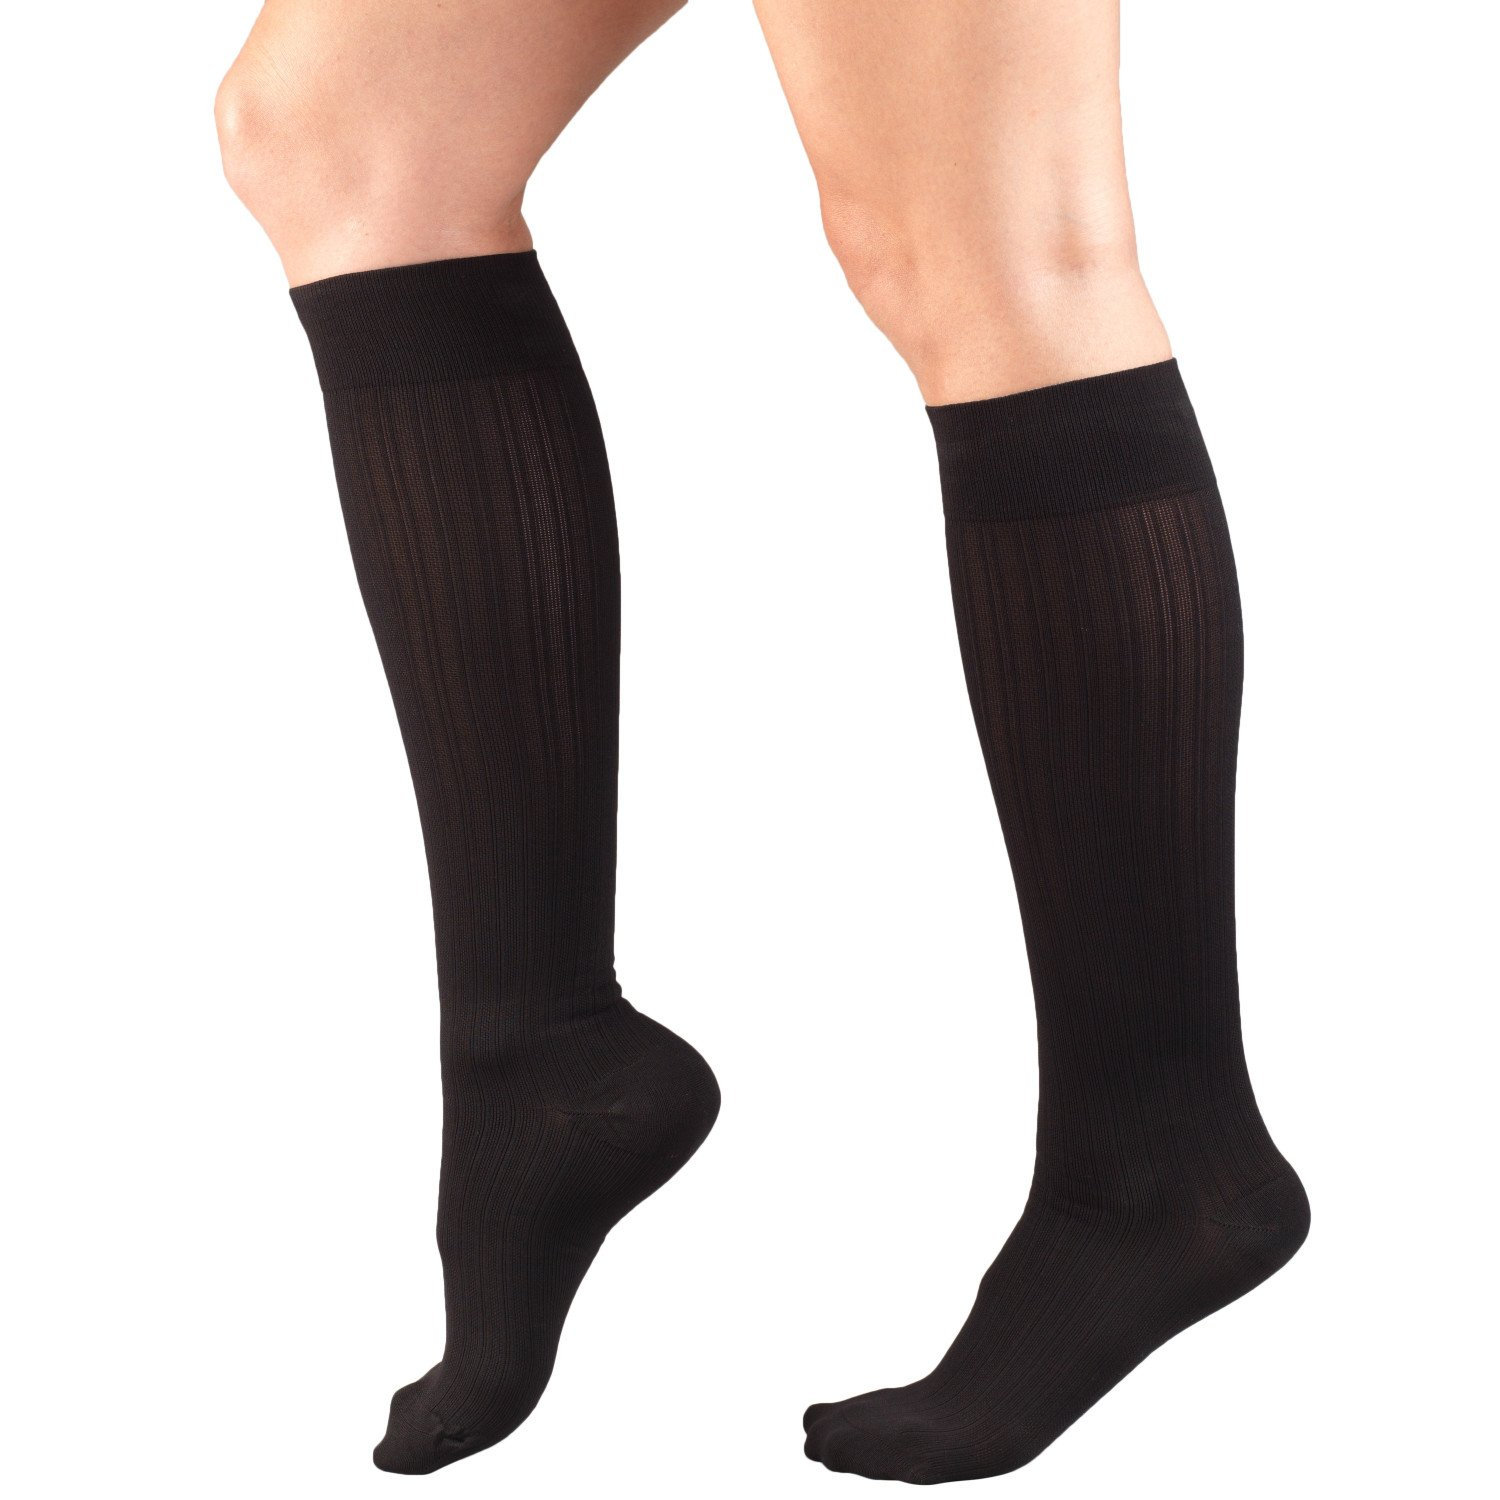 Amazon.com: Truform 1973 Womens Fit Compression Socks, Rib Knit Pattern, 15-20 mmHg, Black, Small (Pack of 2): Health & Personal Care